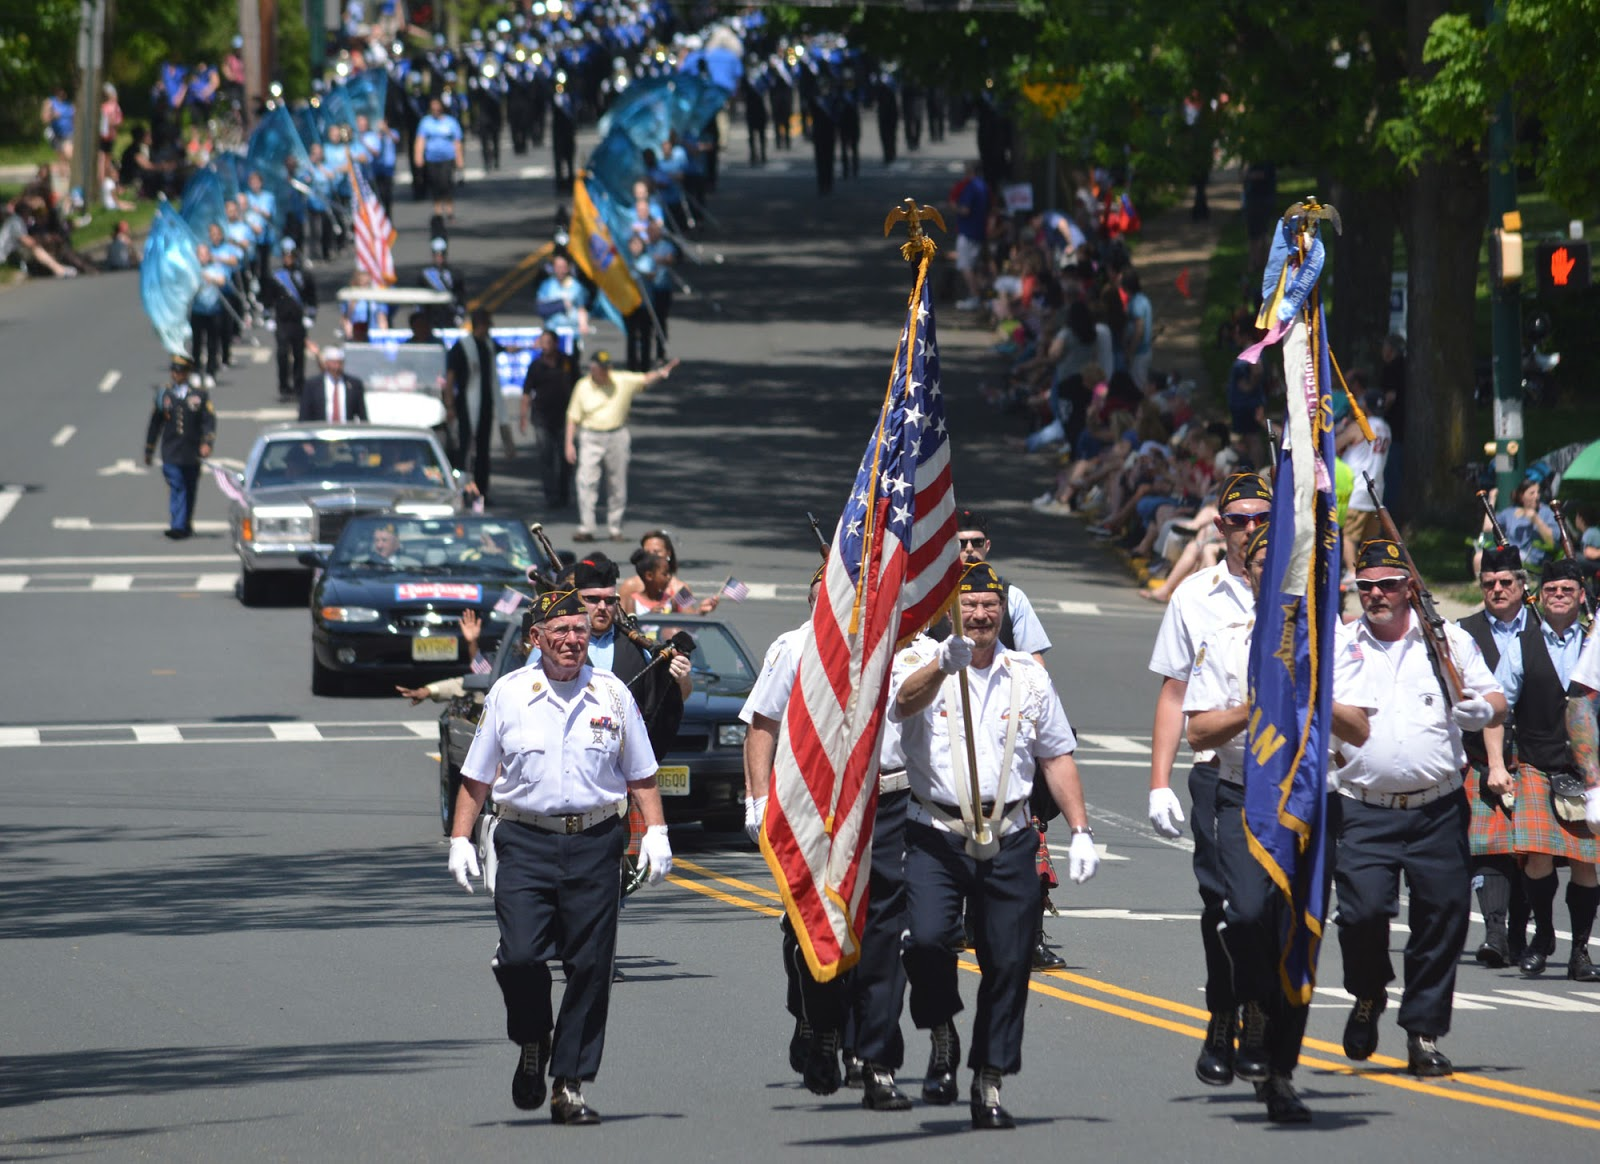 National Memorial Day Parade: Happy Memorial Day Images, Pictures